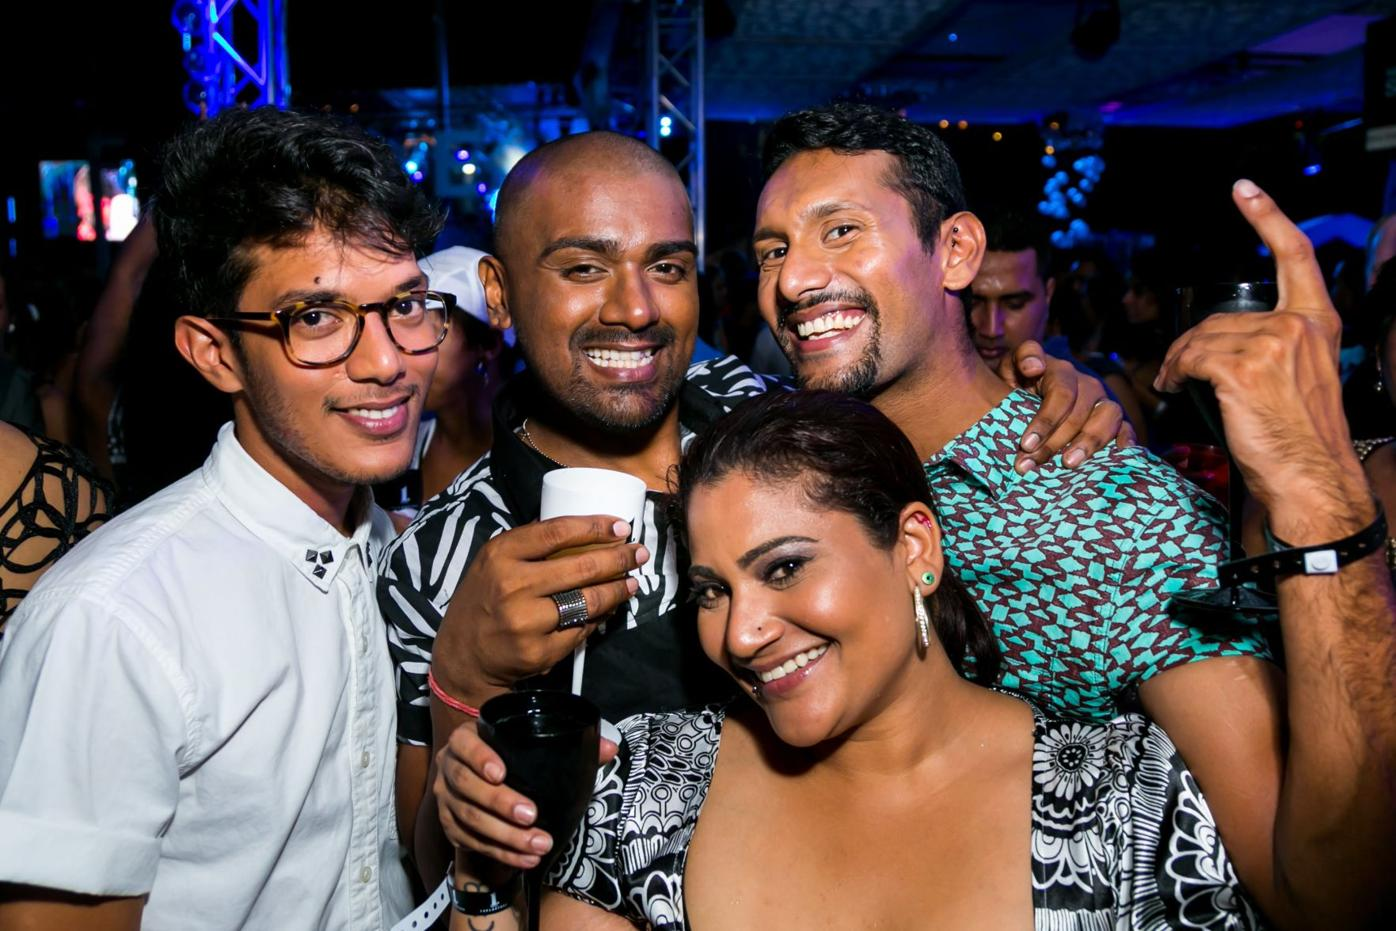 Tribe-Friends enjoy themselves at the Last ONE in 2014